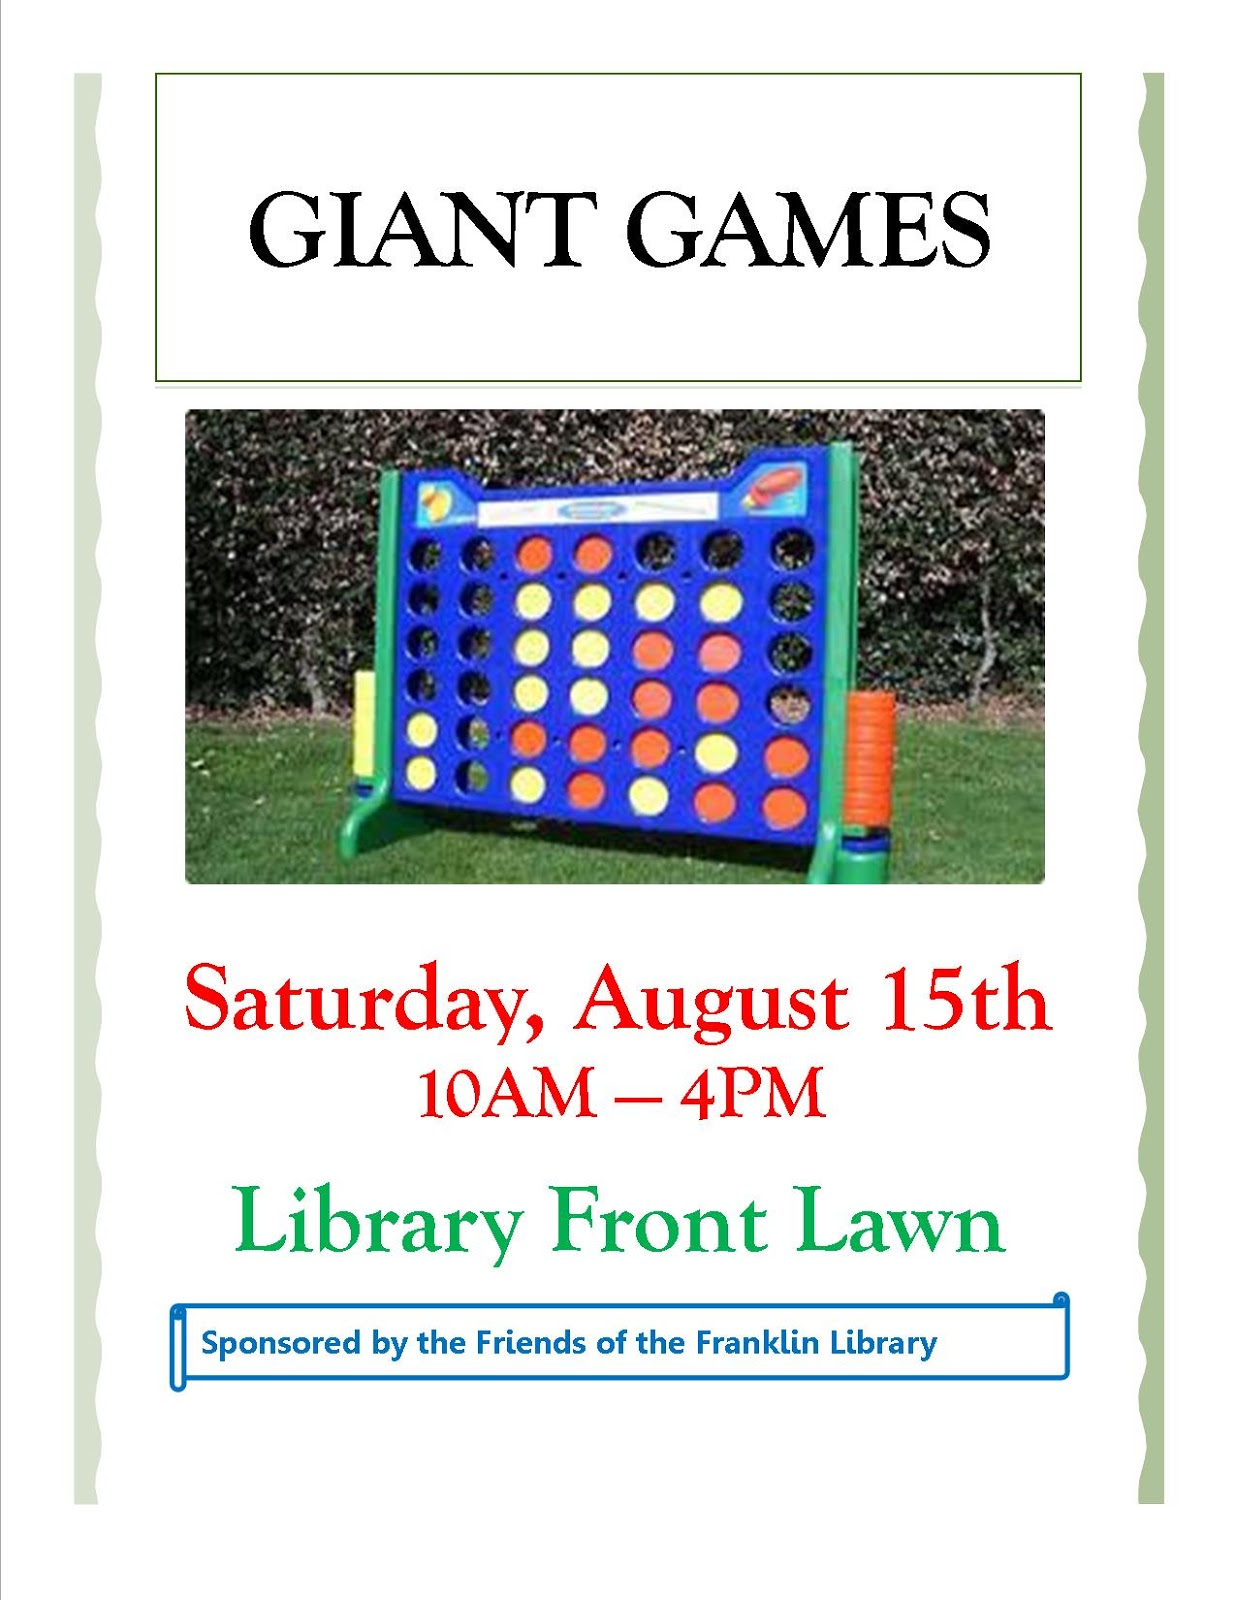 Franklin Library - Giant Games